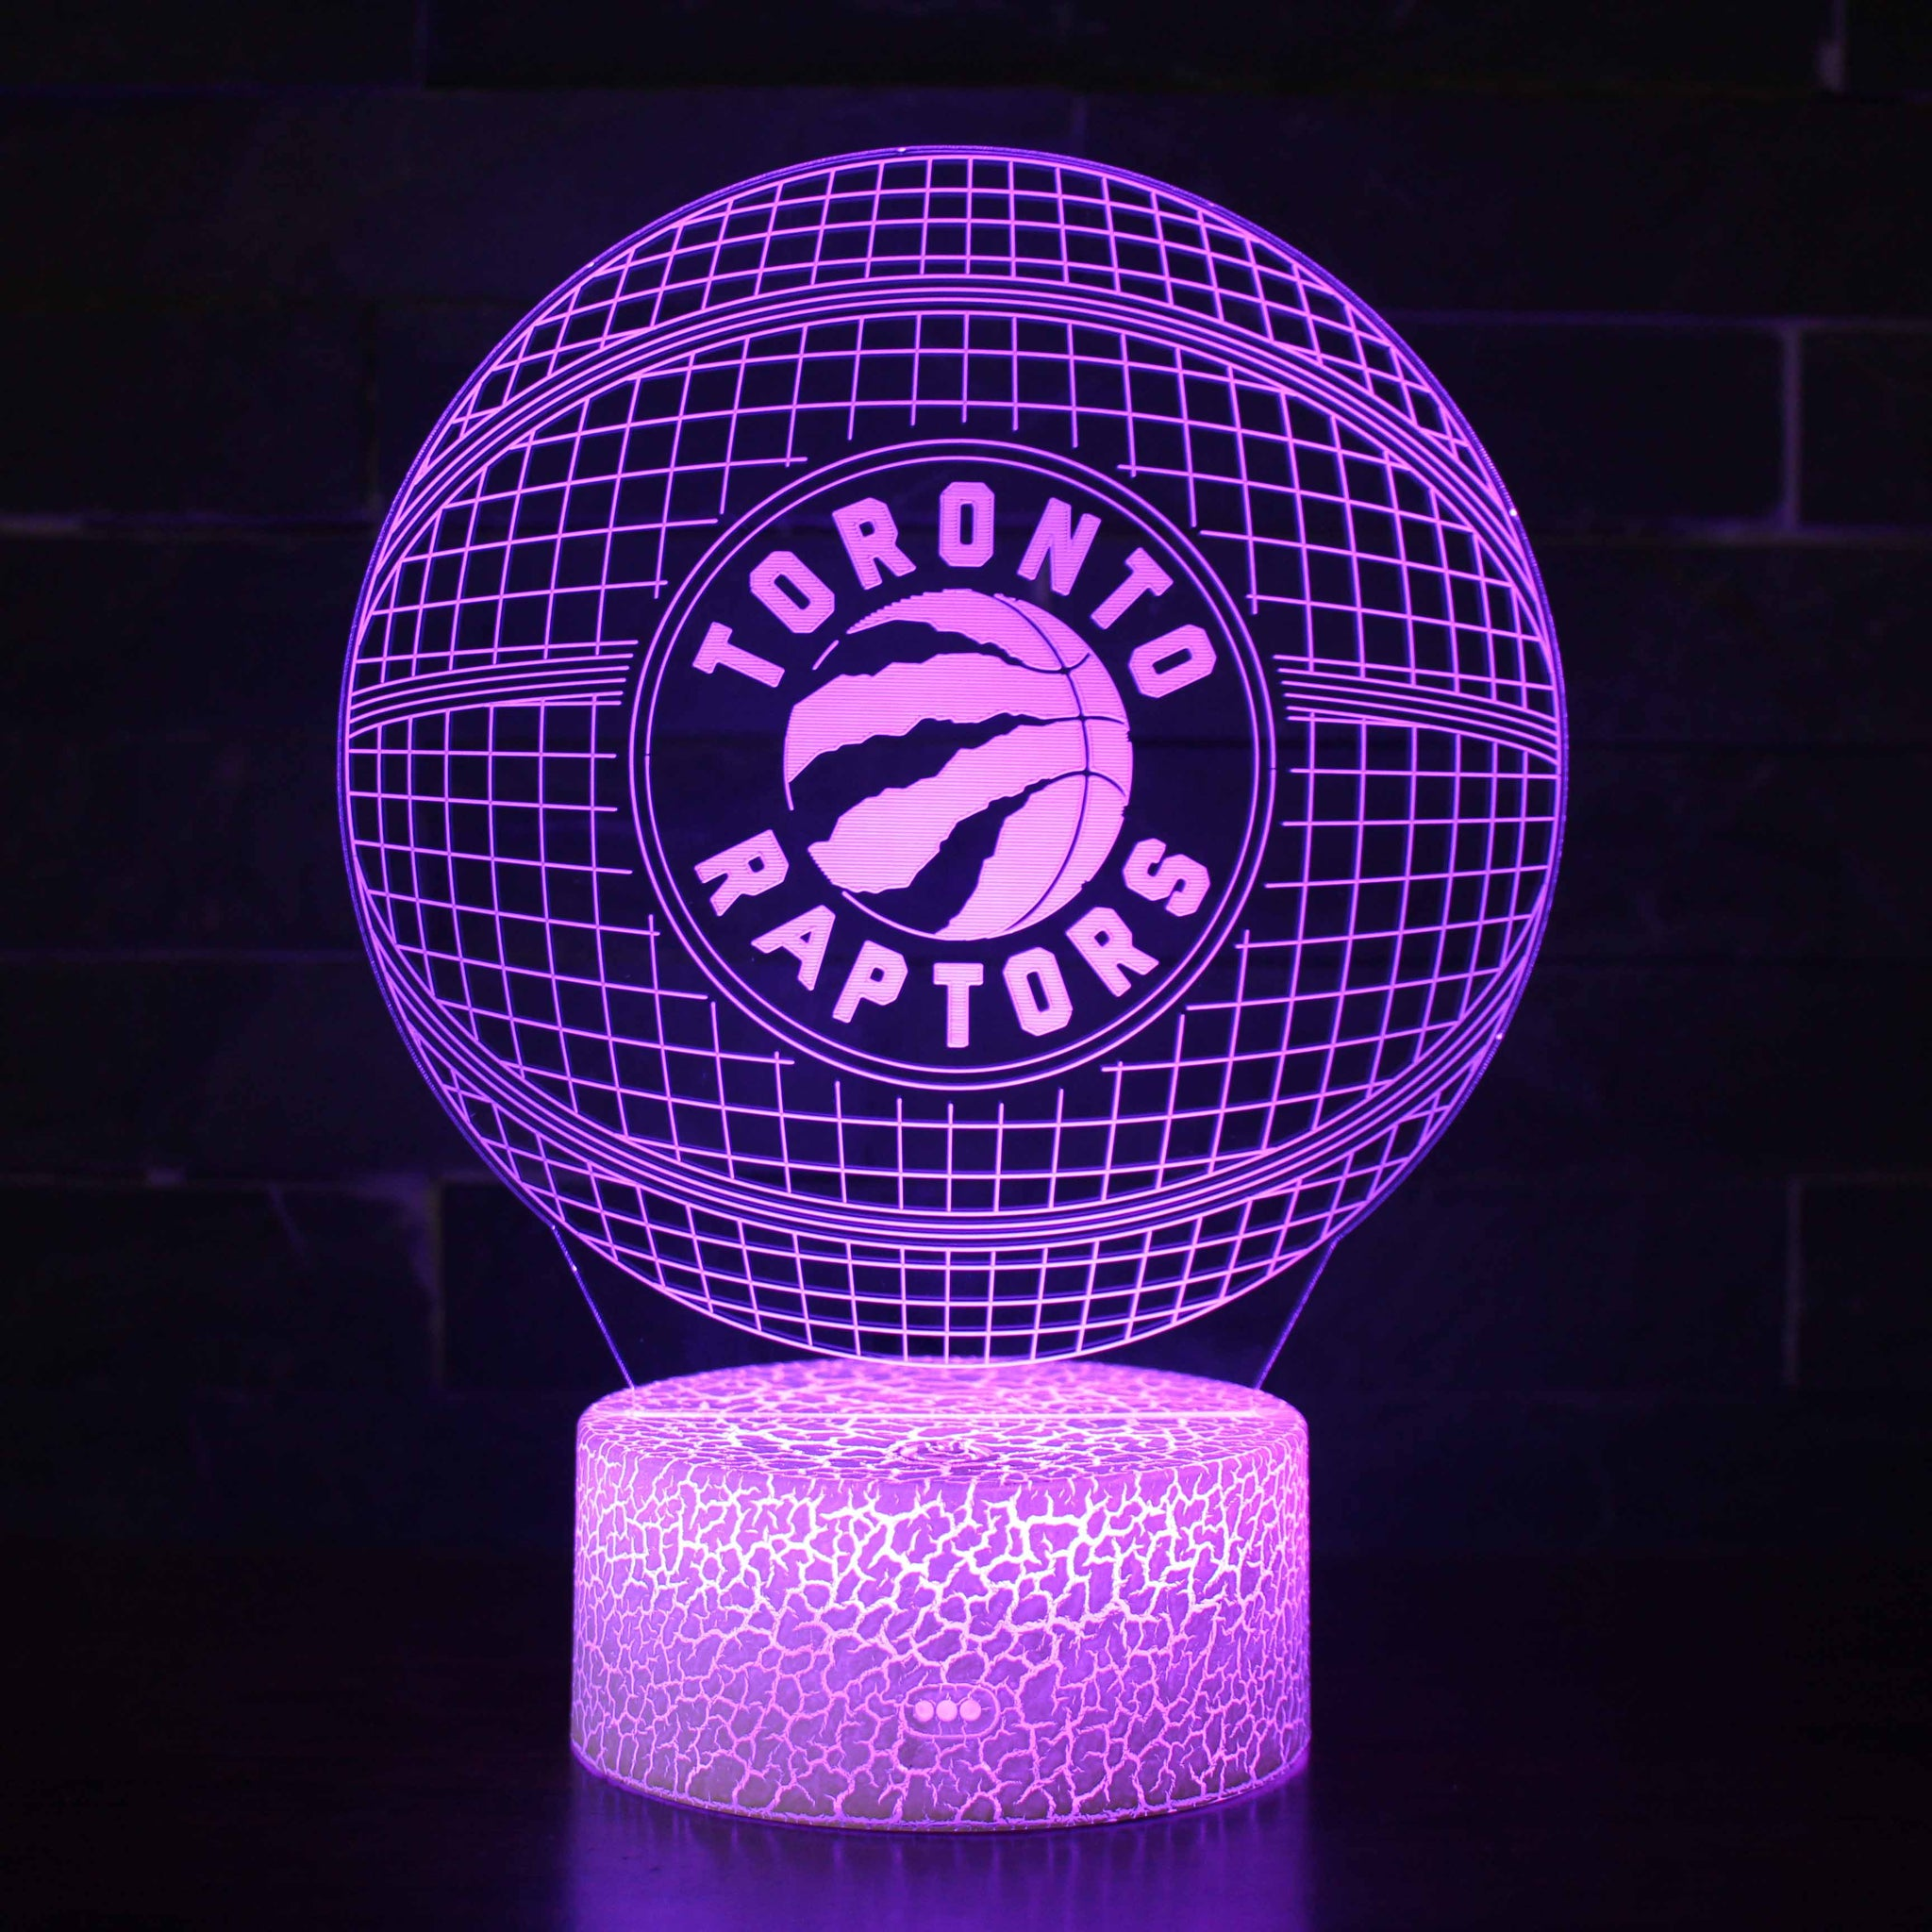 Toronto Raptors NBA Basketball Team 3D Night Light